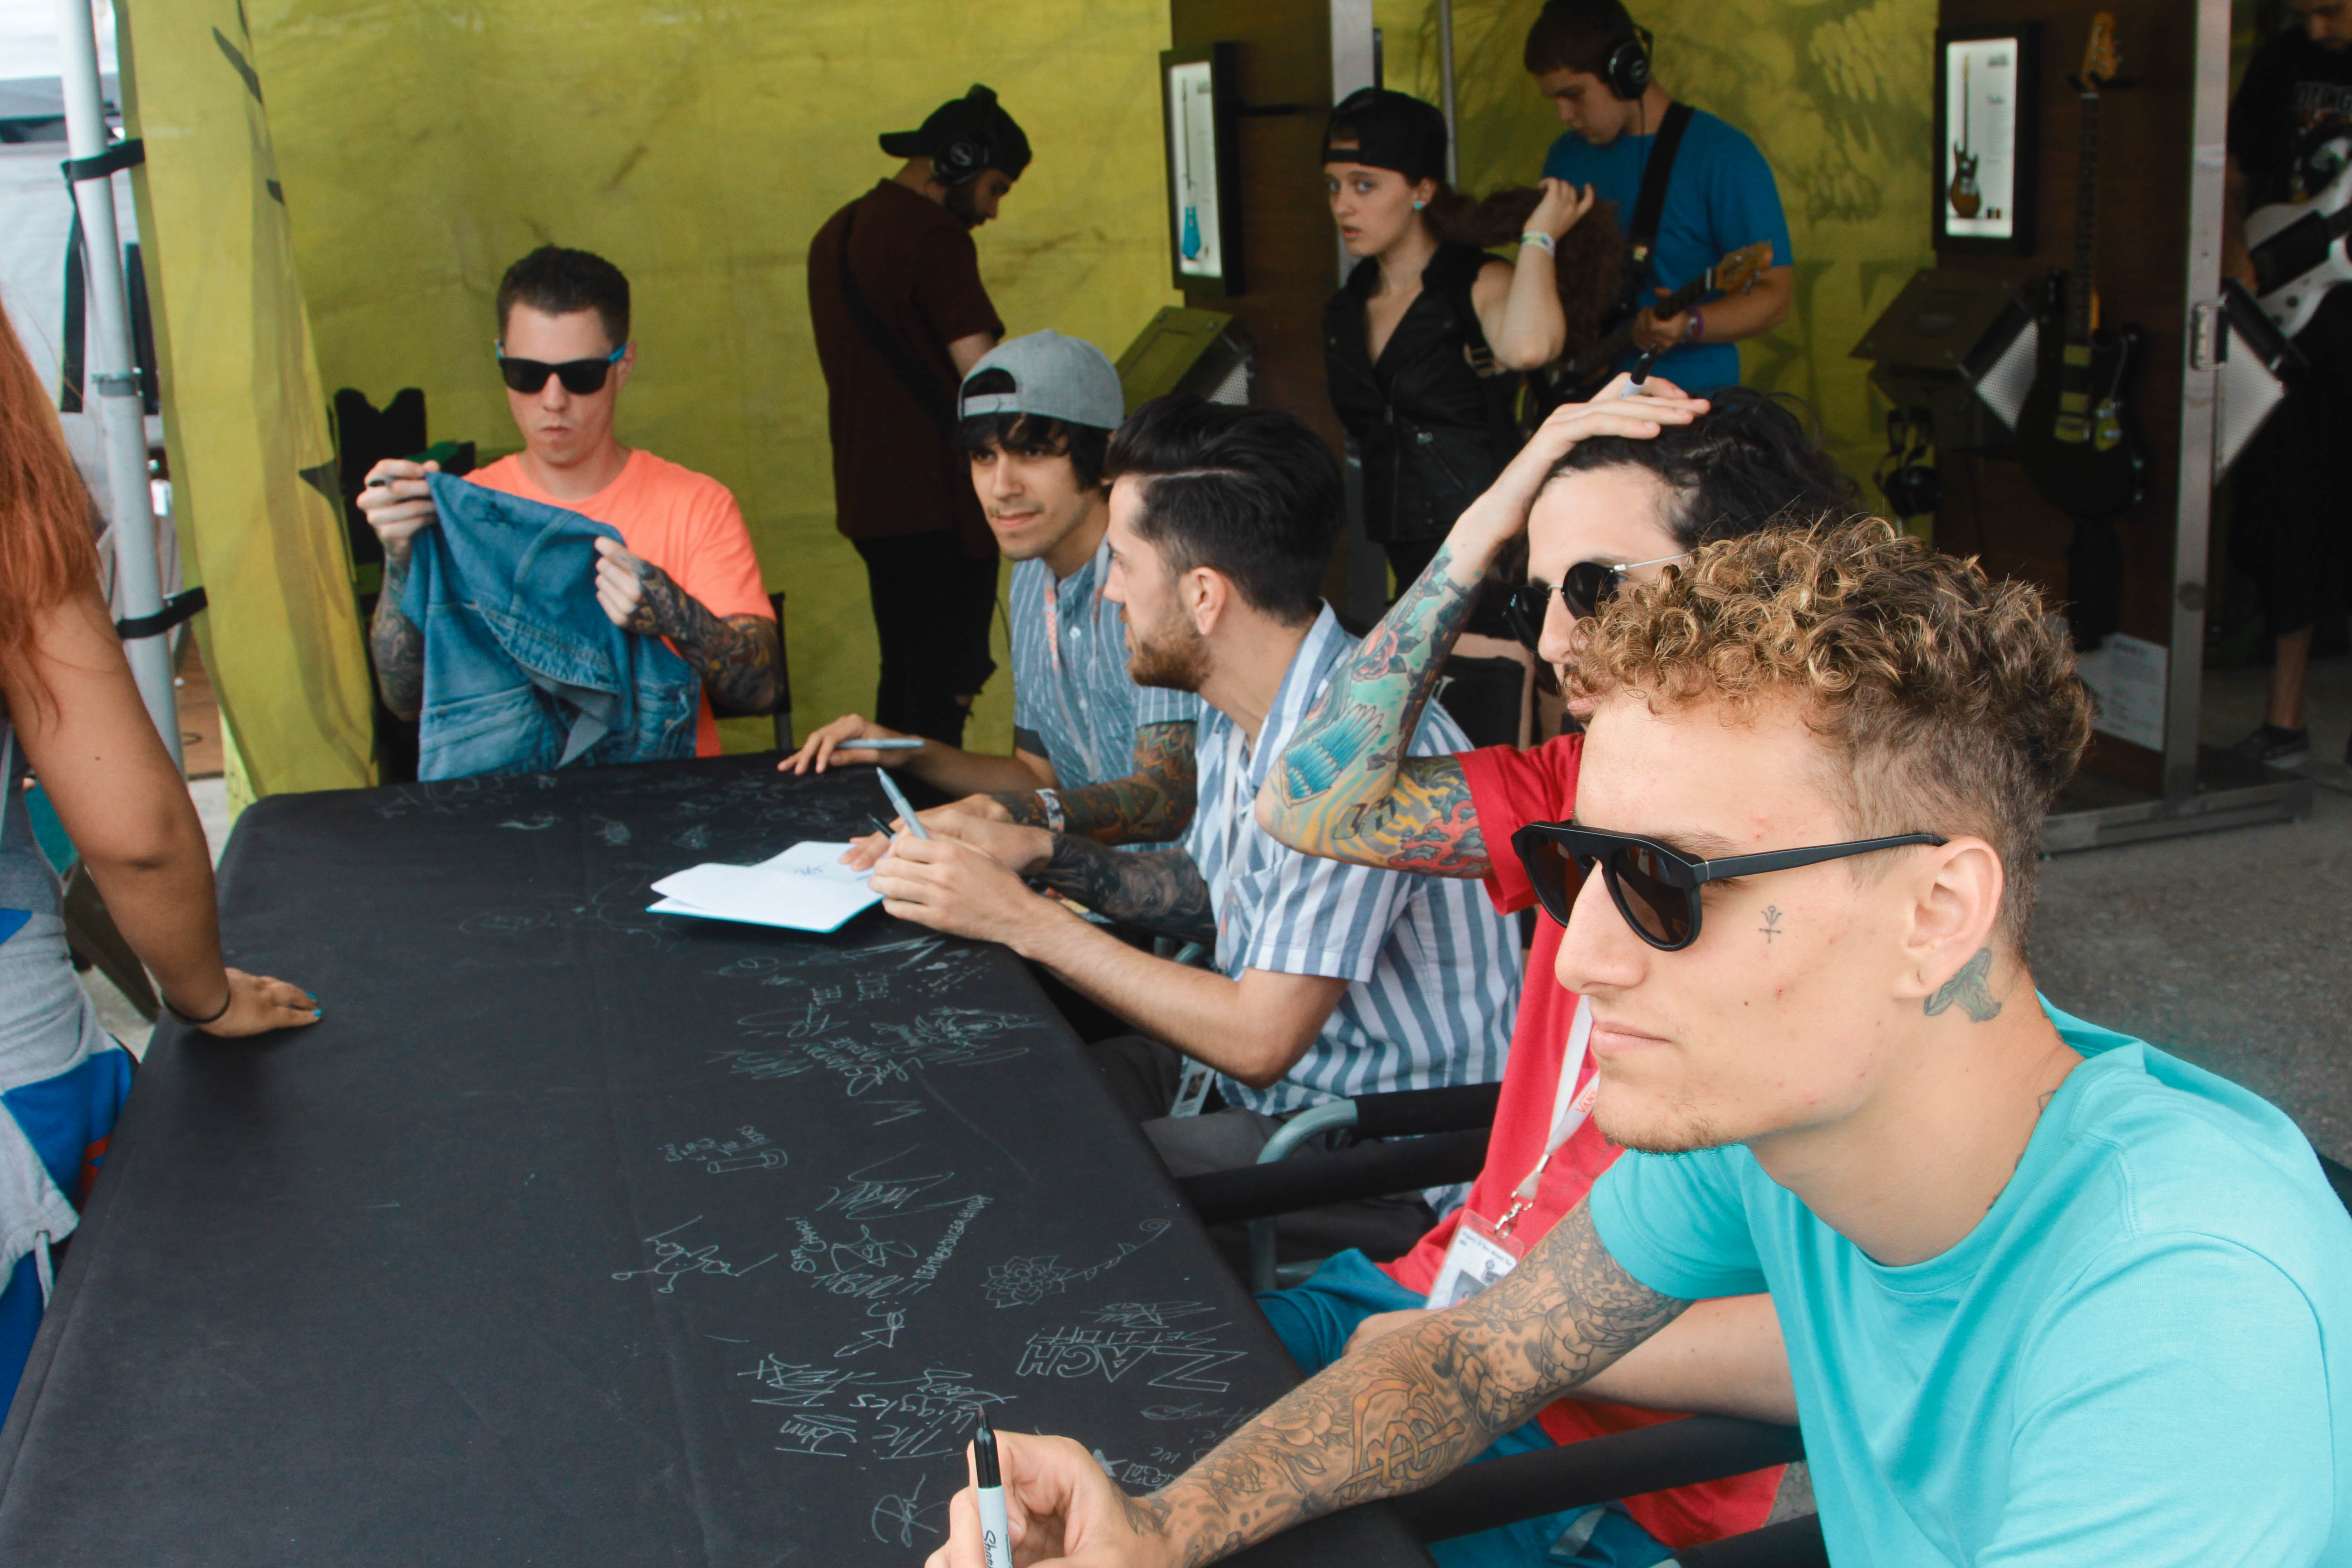 Crown The Empire Signing